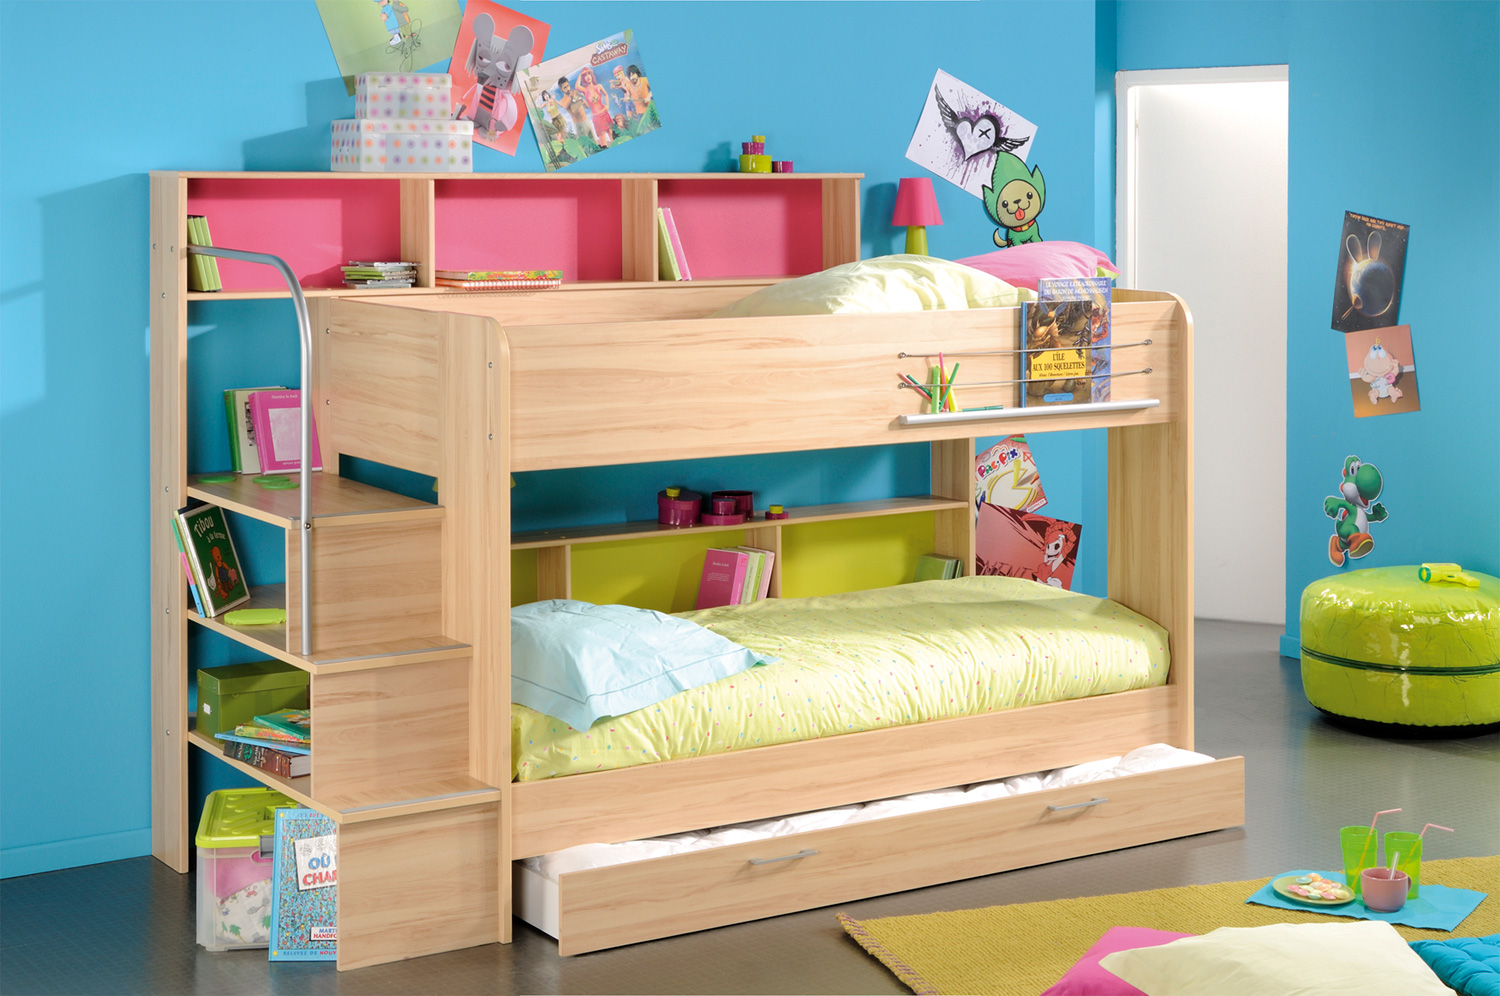 Space saving stylish bunk beds for your home - Space saving bunk beds for small rooms ...